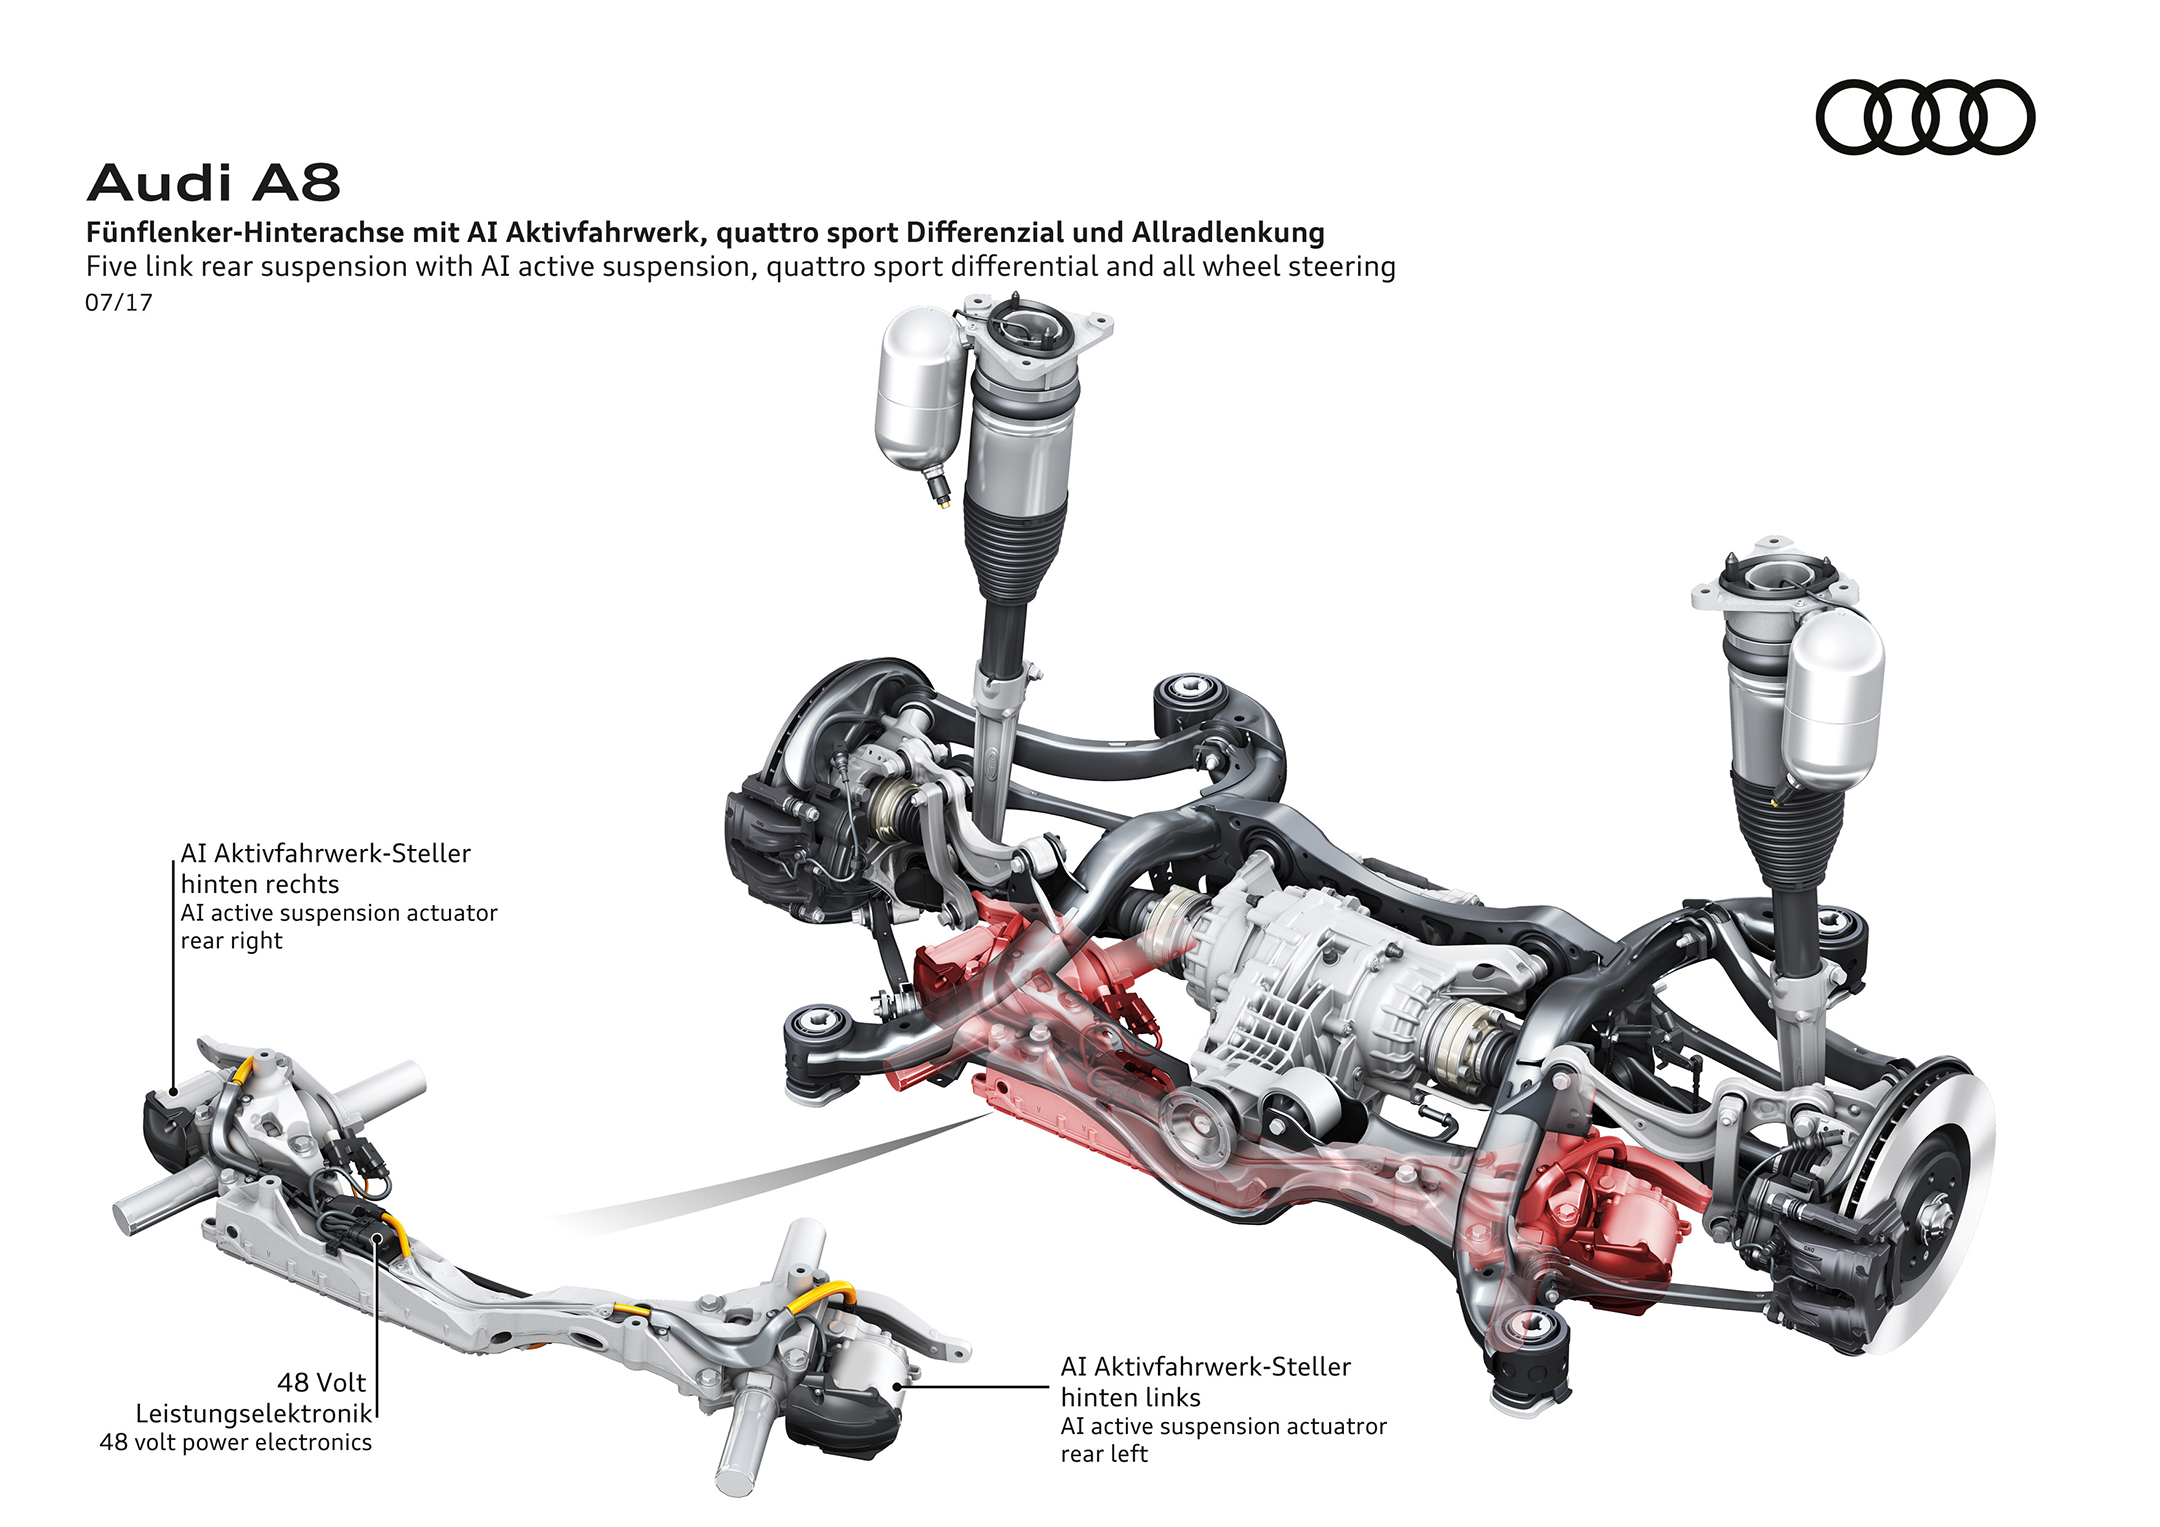 Audi A8 - 2017 - rear - Audi AI active suspension